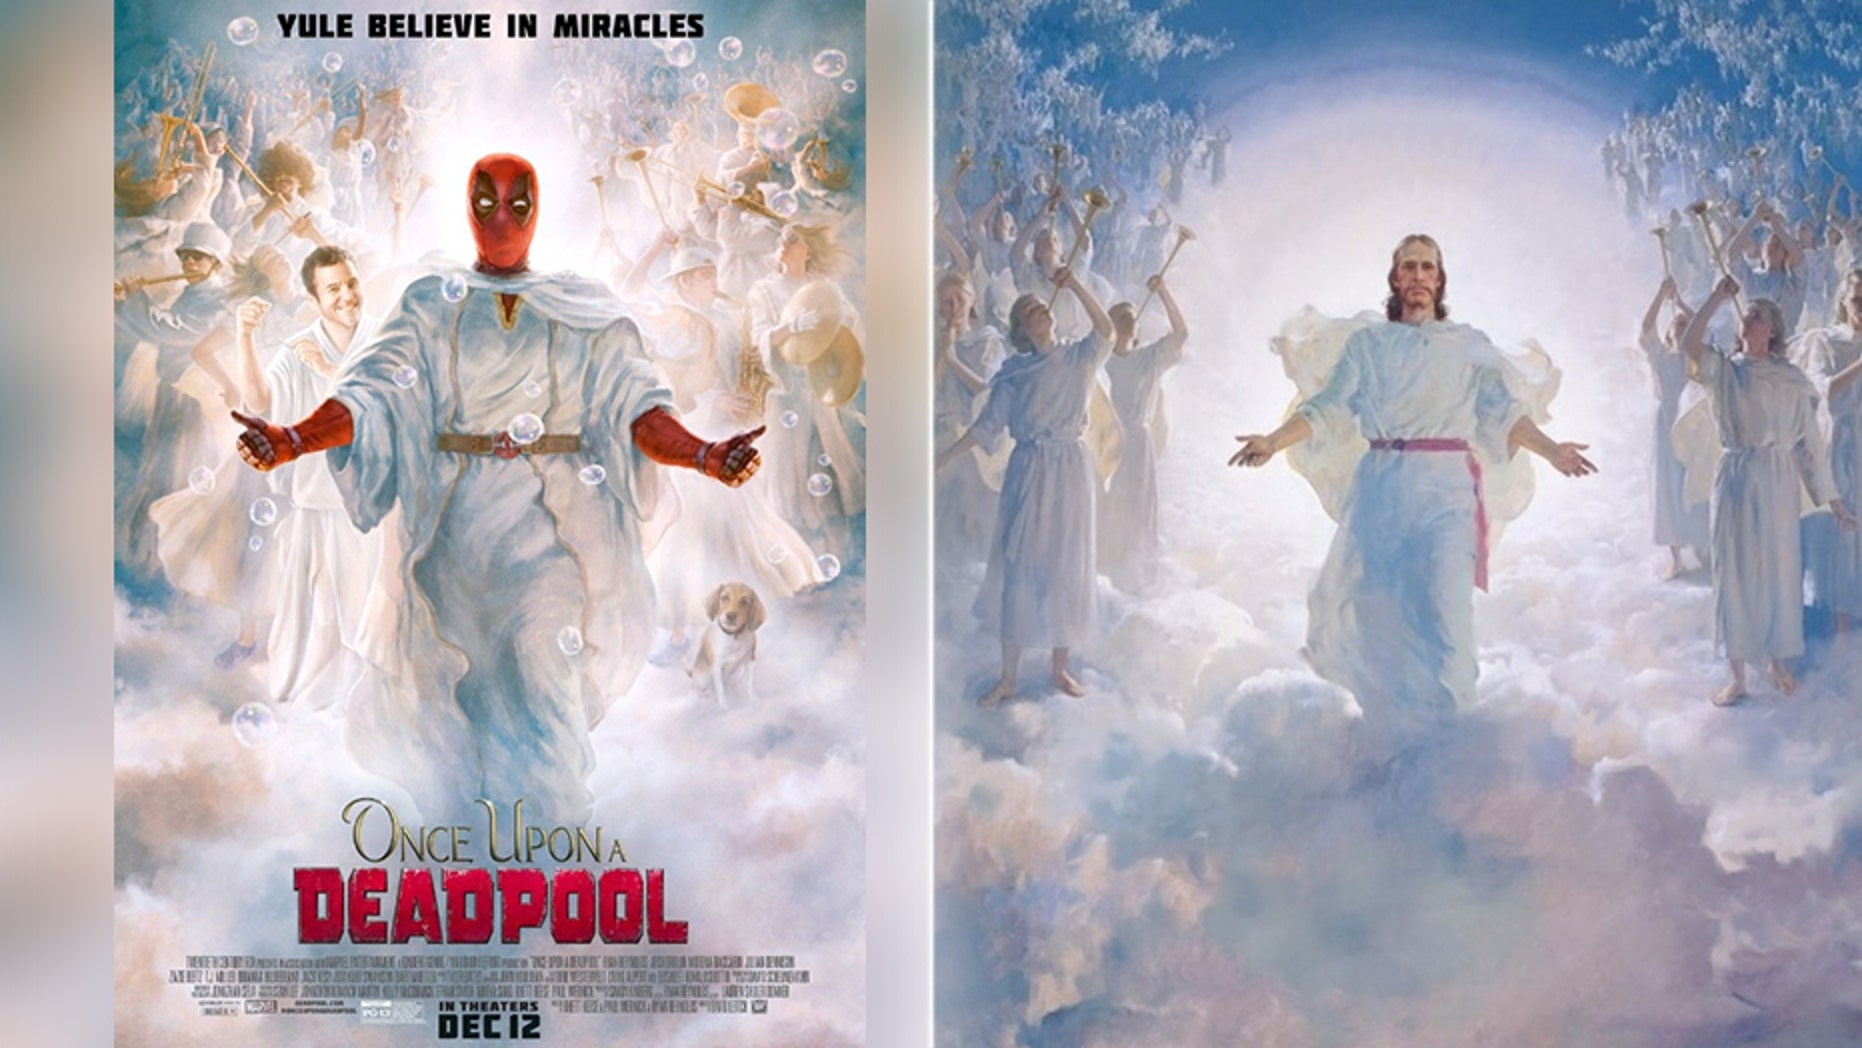 """An online petition has called for the removal of a """"Once Upon a Deadpool"""" poster (left) that resembles """"The Second Coming"""" (right)."""